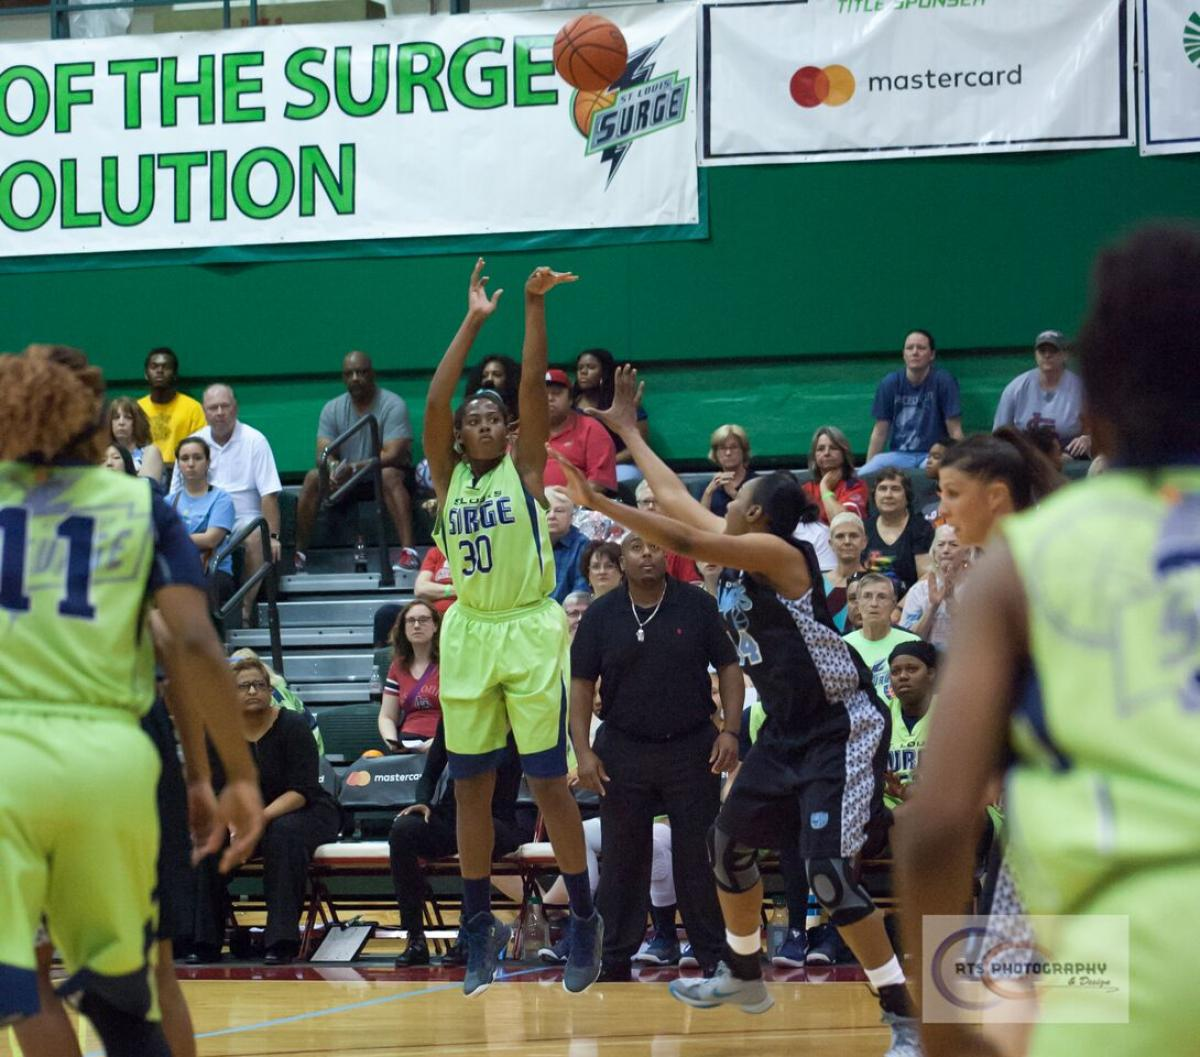 St. Louis Surge Basketball